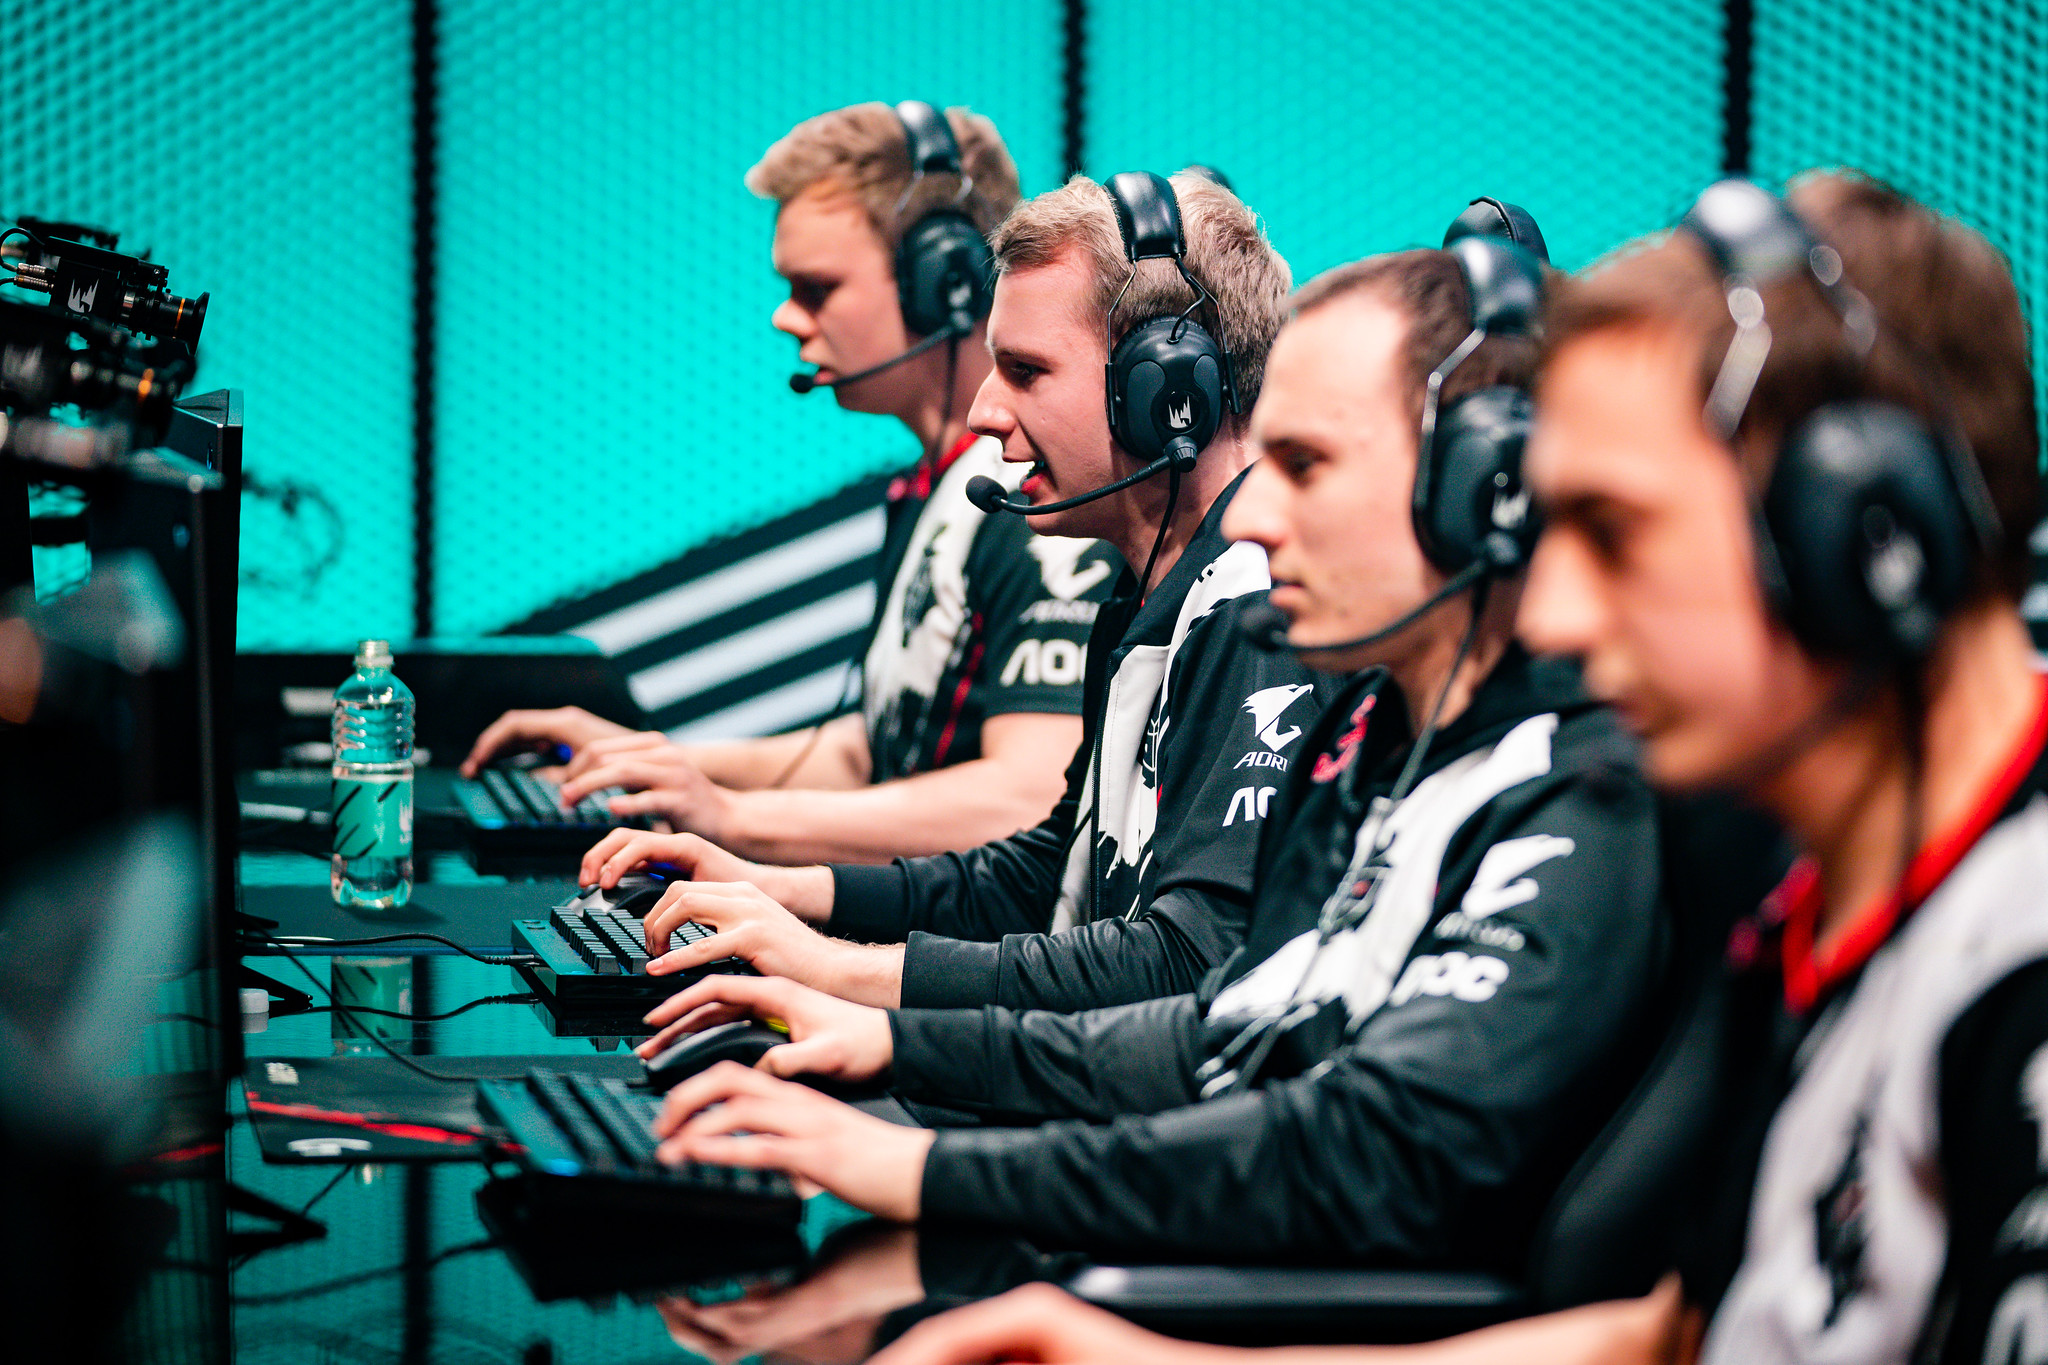 G2 bounce back with emphatic win over Excel Esports